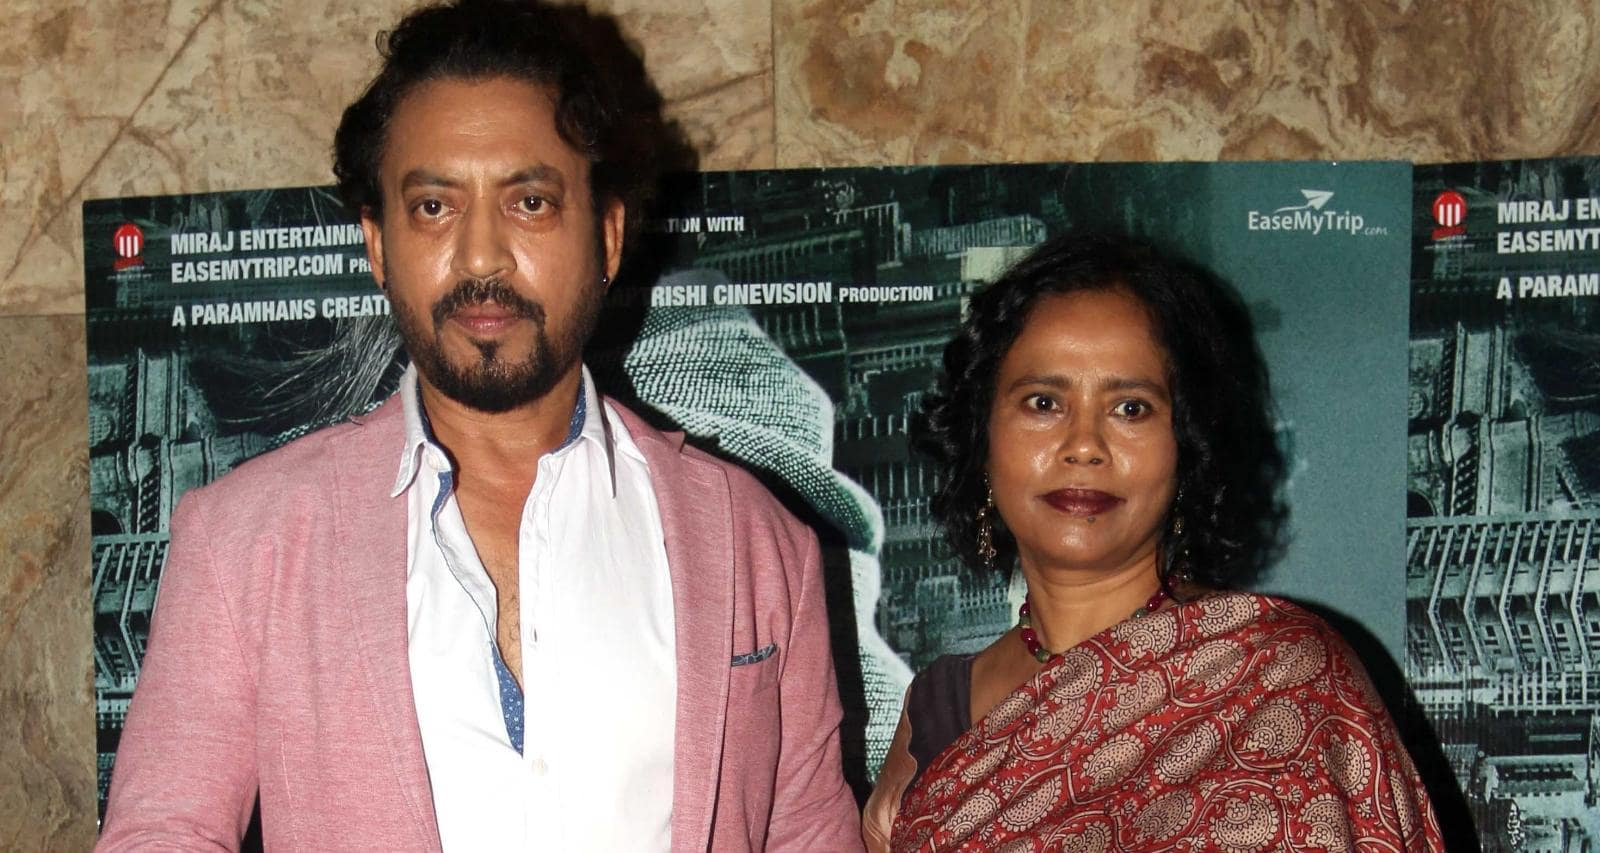 Irrfan Khan Dead: Facts About the Indian Actor's Family, Parents mother Sayeeda Begum father Sahabzade Yaseen Ali Khan, Kids Babil, Ayan and Wife Sutapa Sikdar